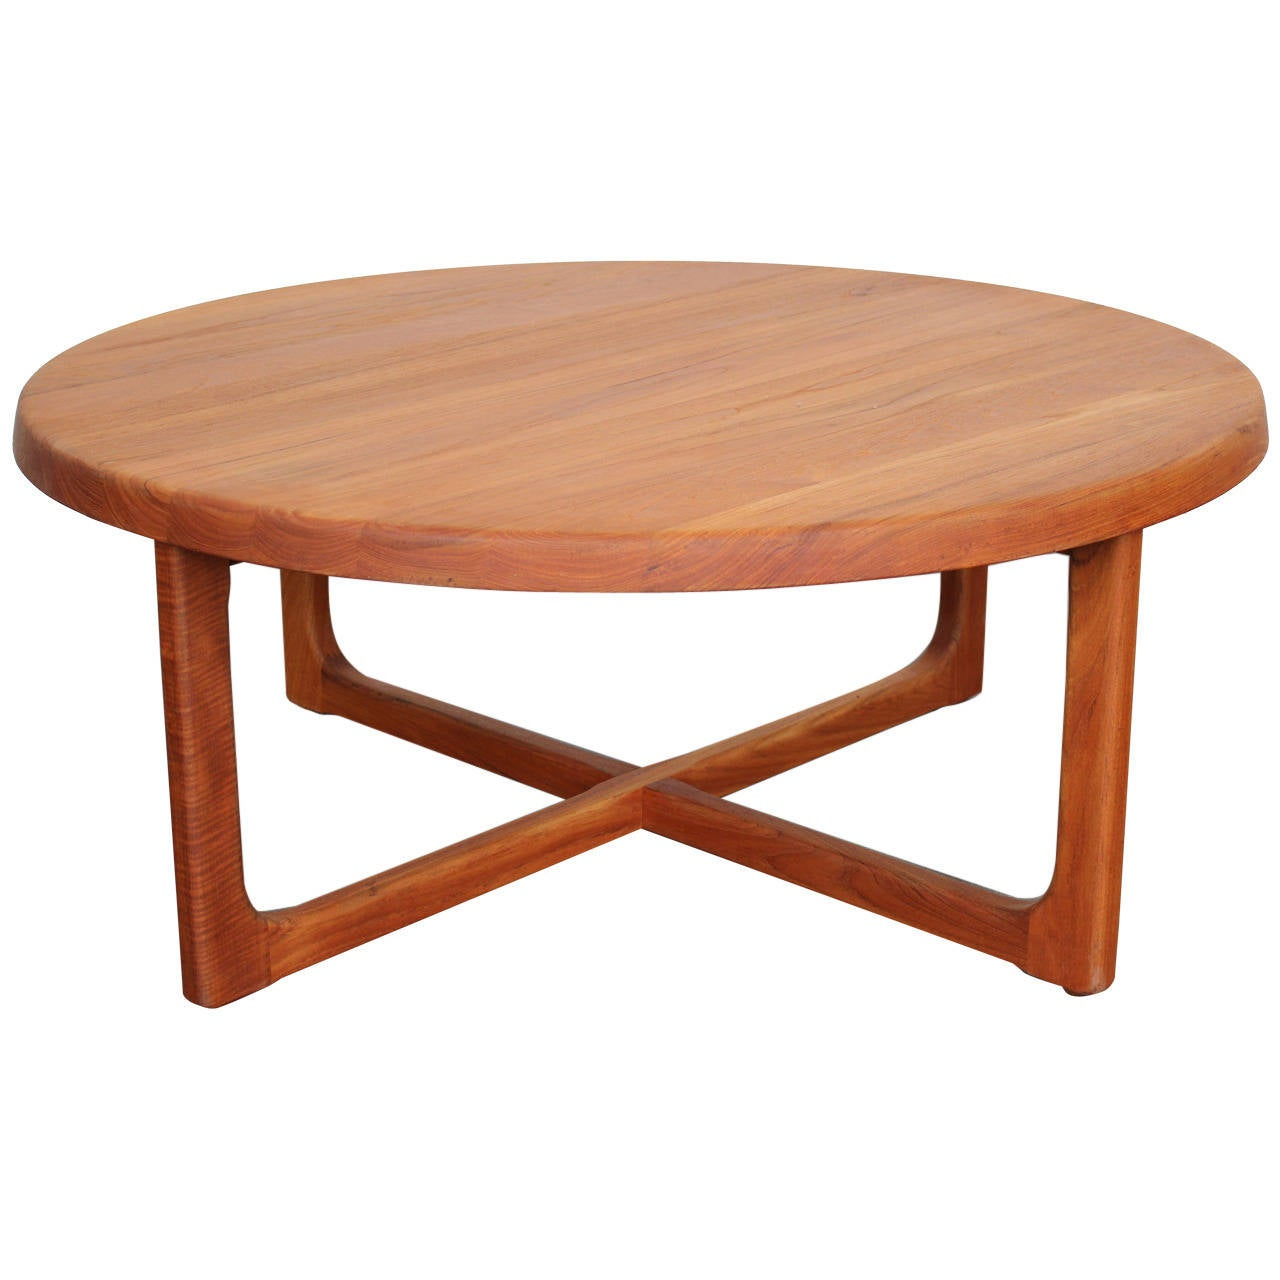 Mid century large round solid teak coffee table at 1stdibs mid century large round solid teak coffee table 1 geotapseo Gallery